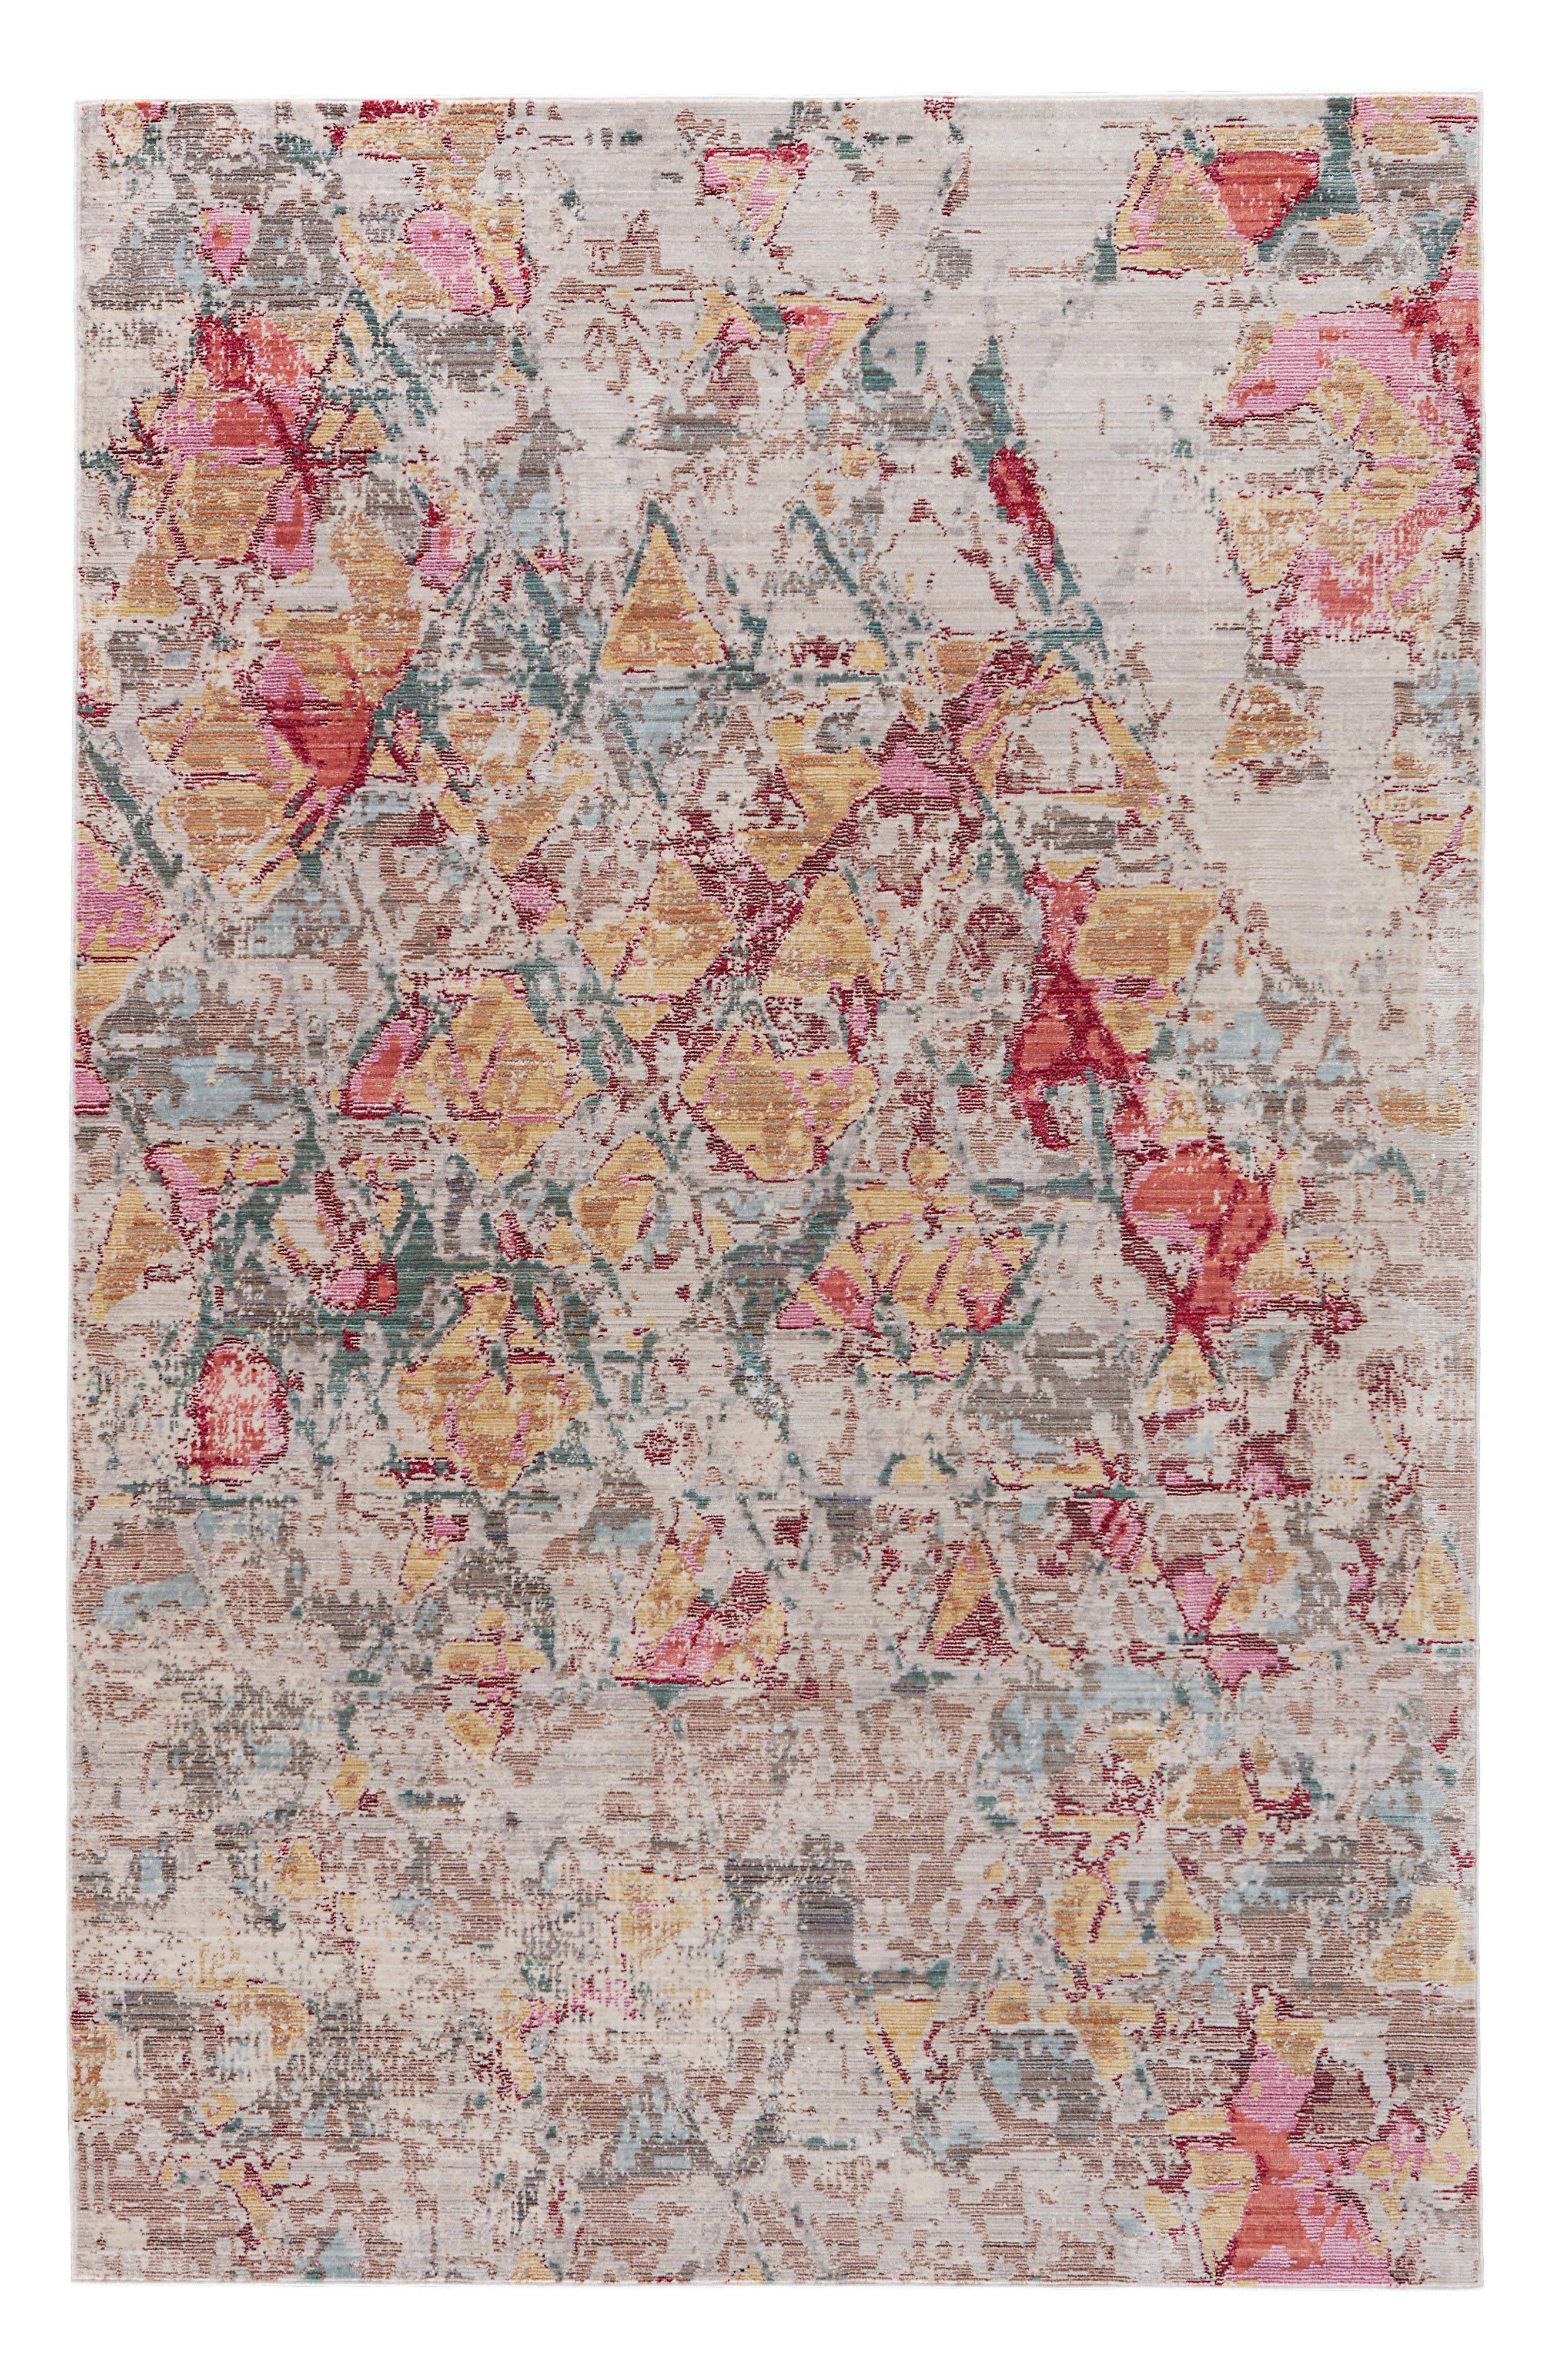 Contemporary Chateau Rug,                         Main,                         color, Pink/ Grey